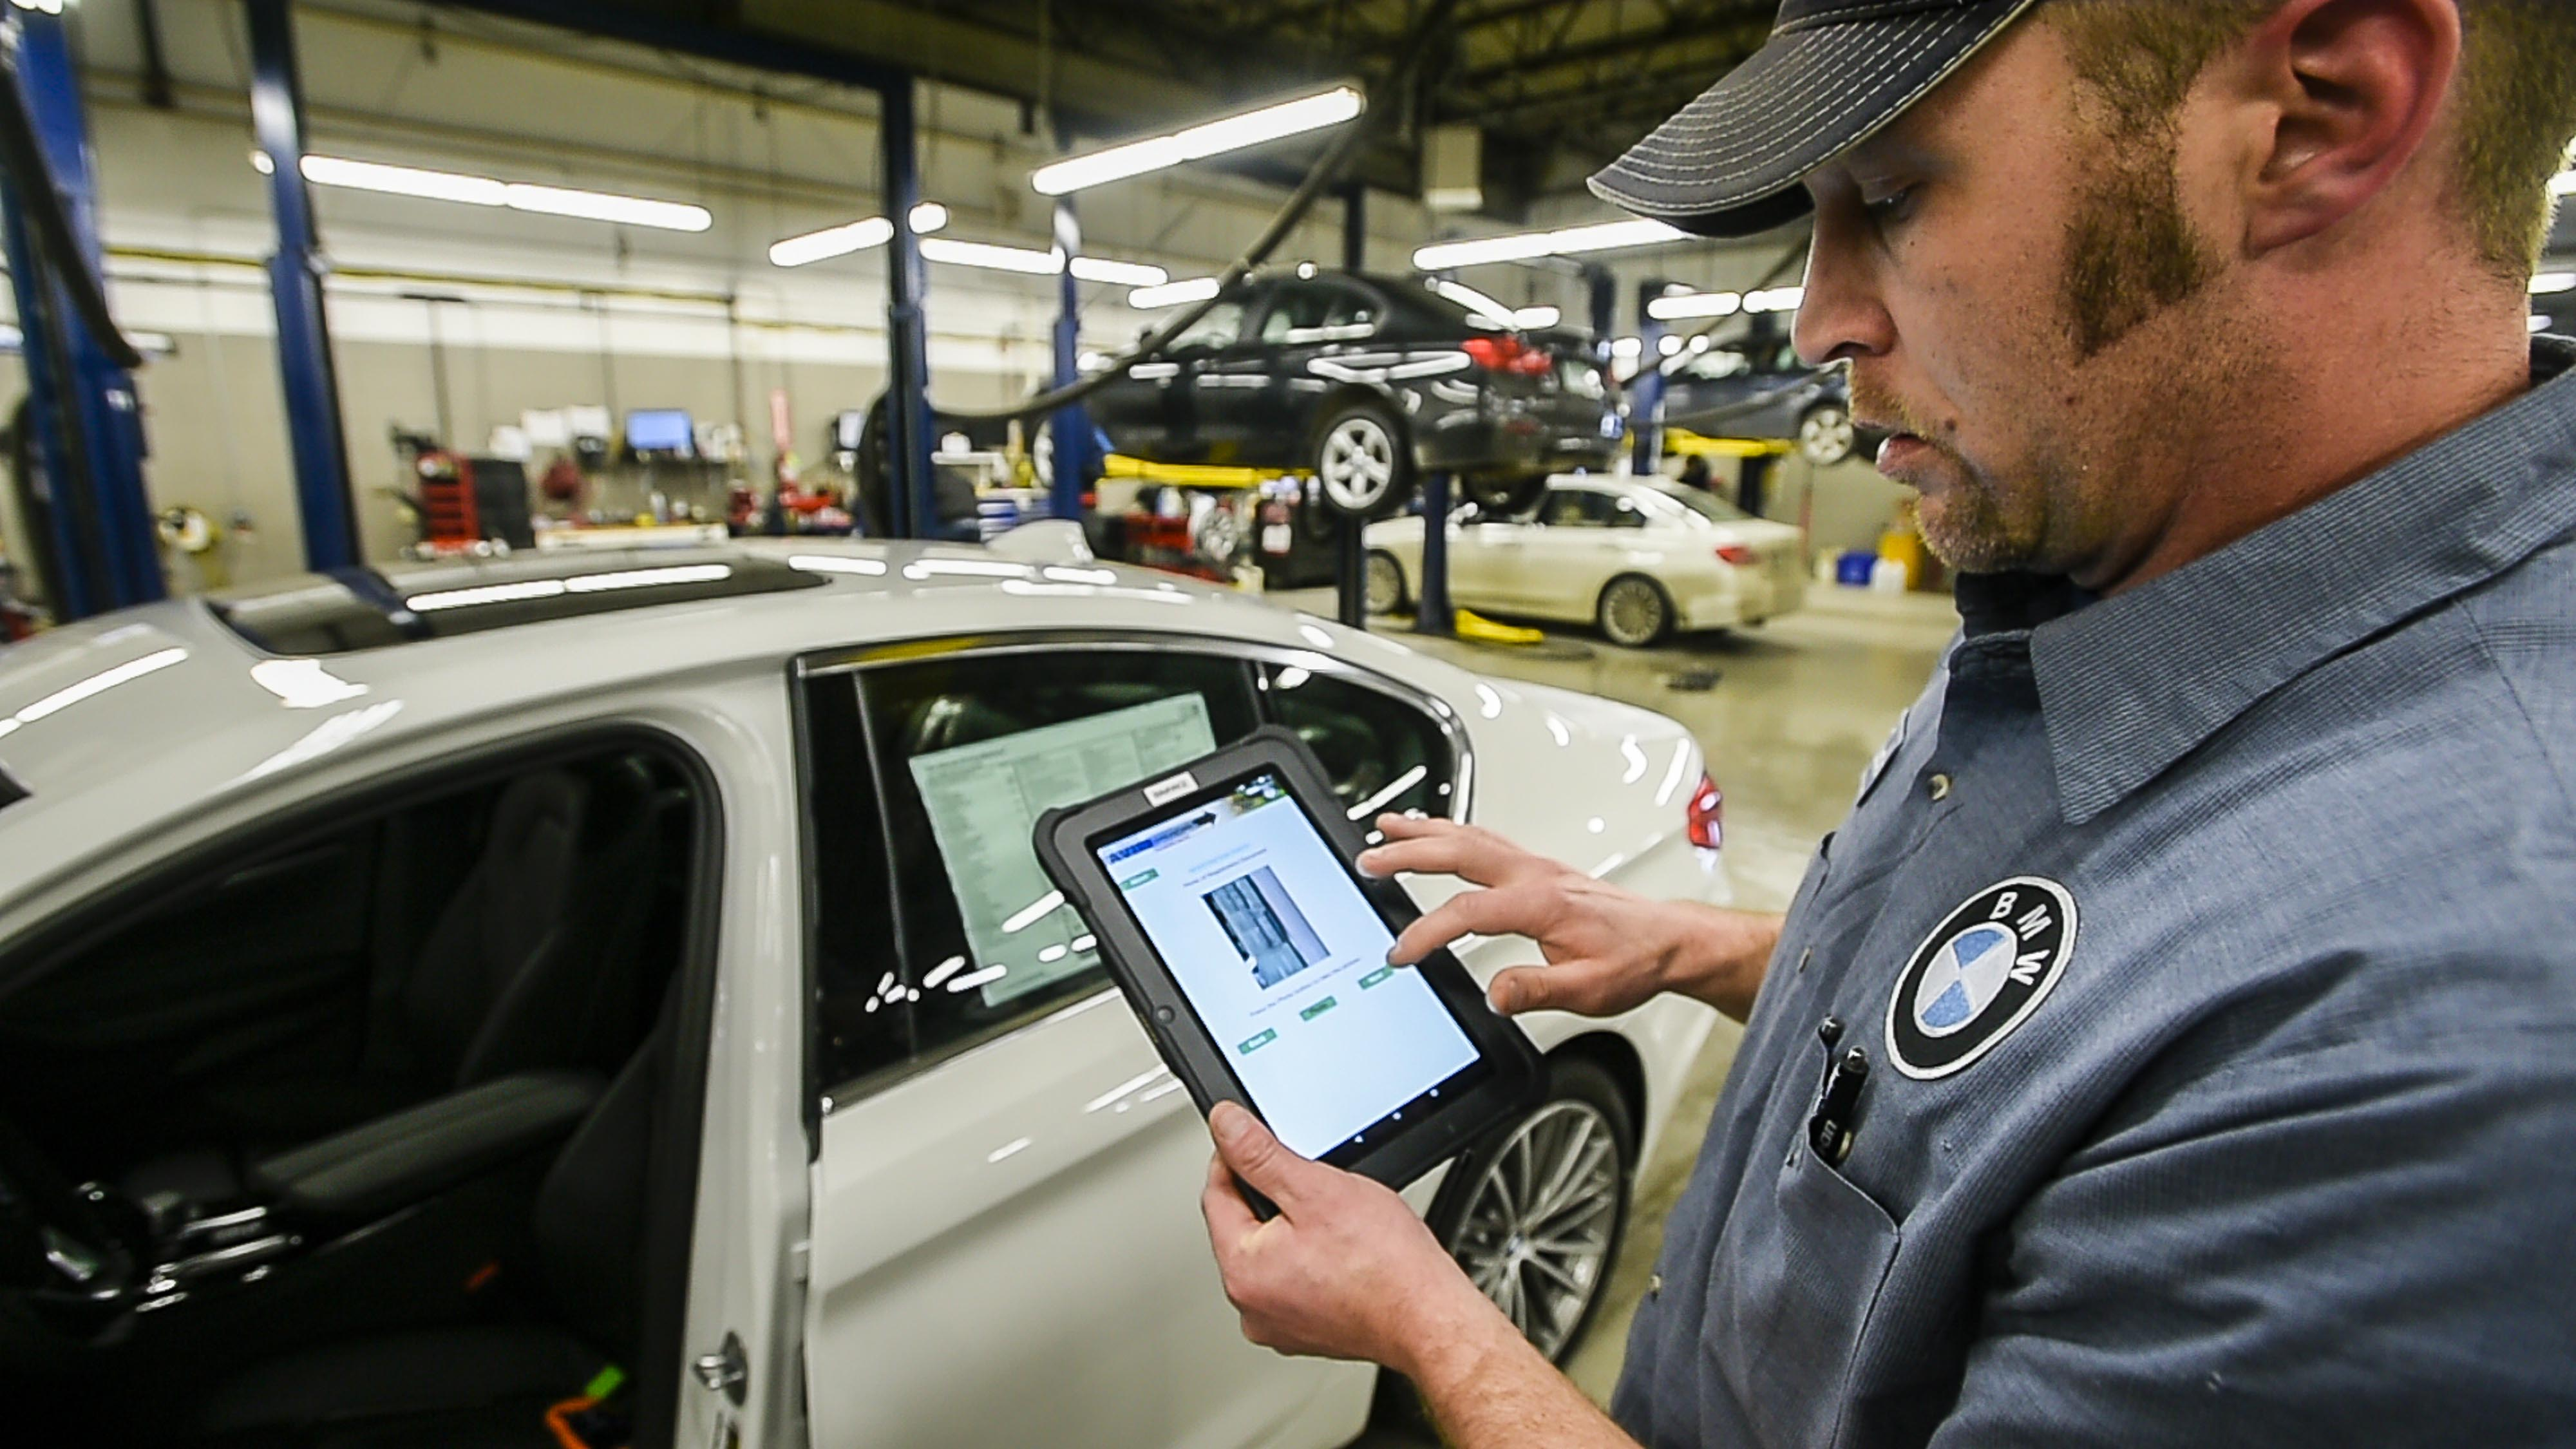 Vt car inspections are going digital, at a cost